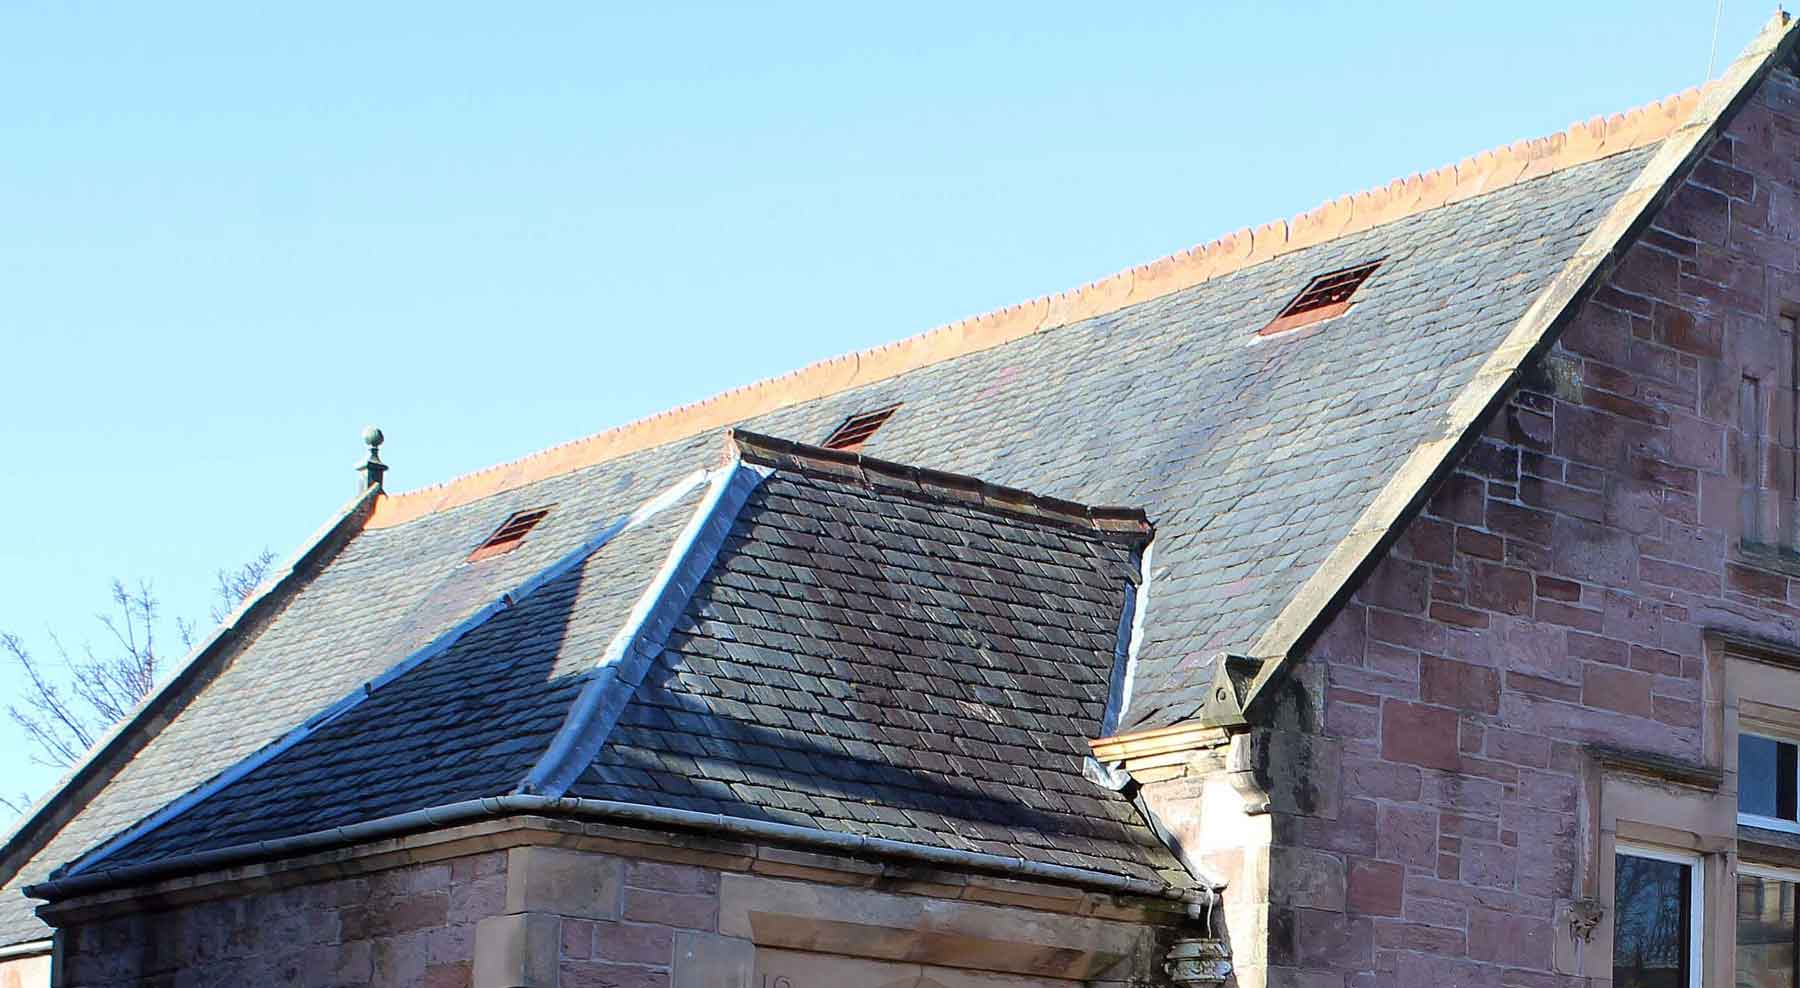 community hall and church roofs have to deal with climate change MAAC Studio conservation architect Inverness Edinburgh